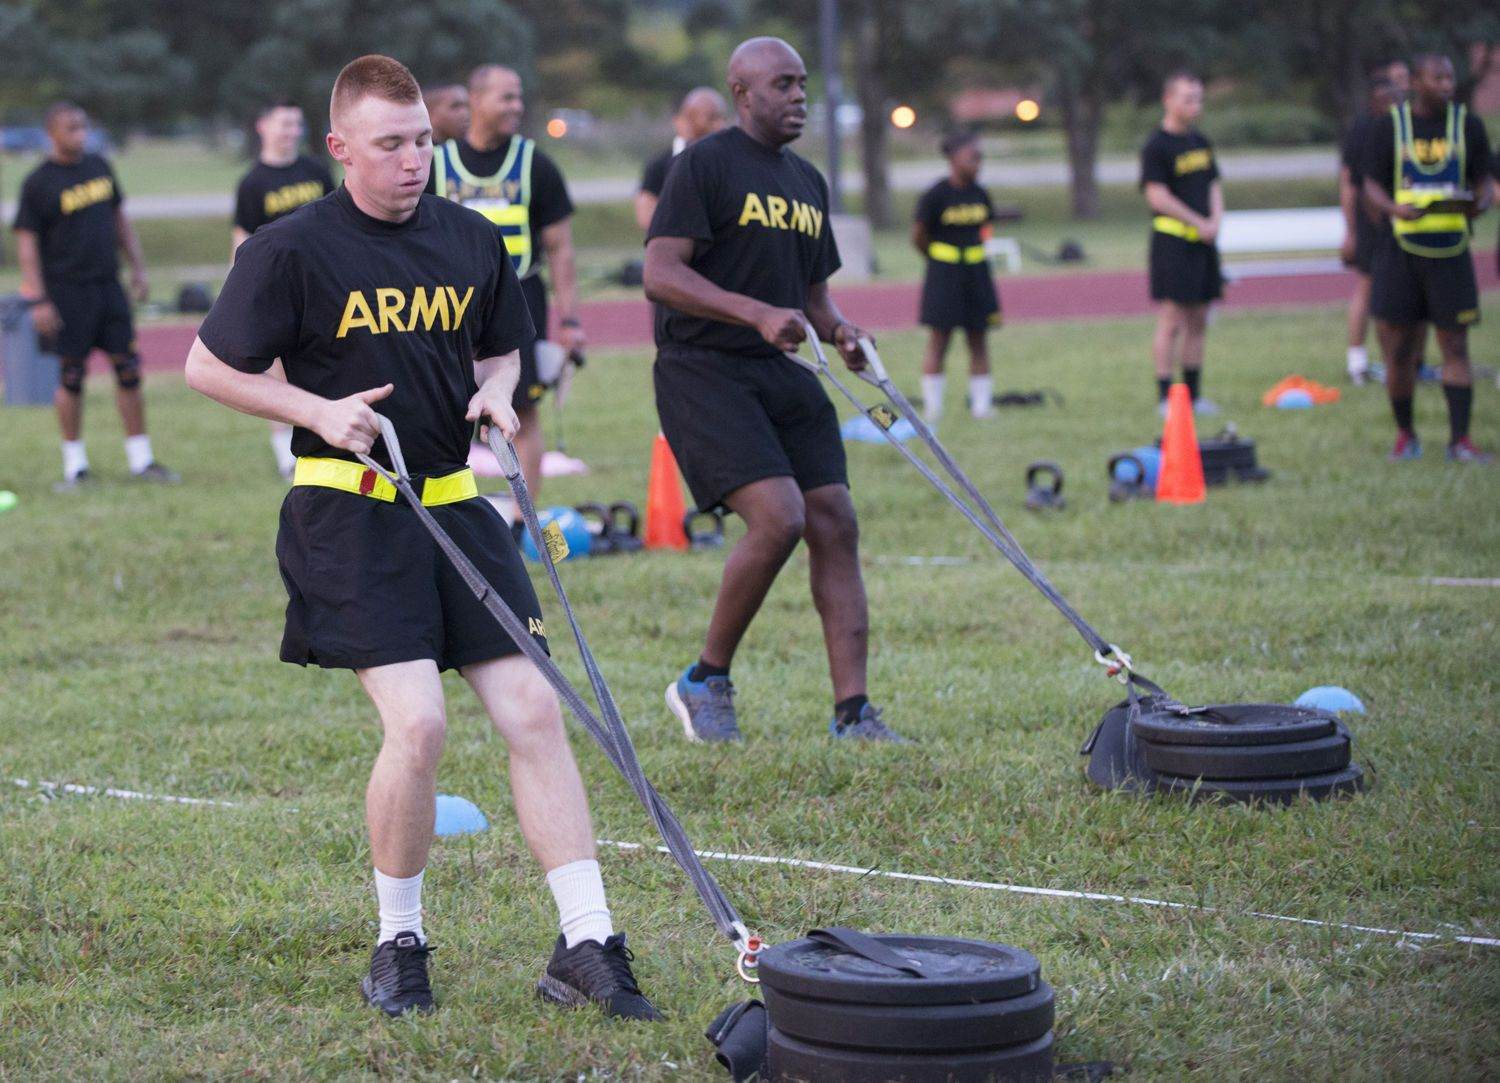 Combat ready new army test aims to better assess fitness